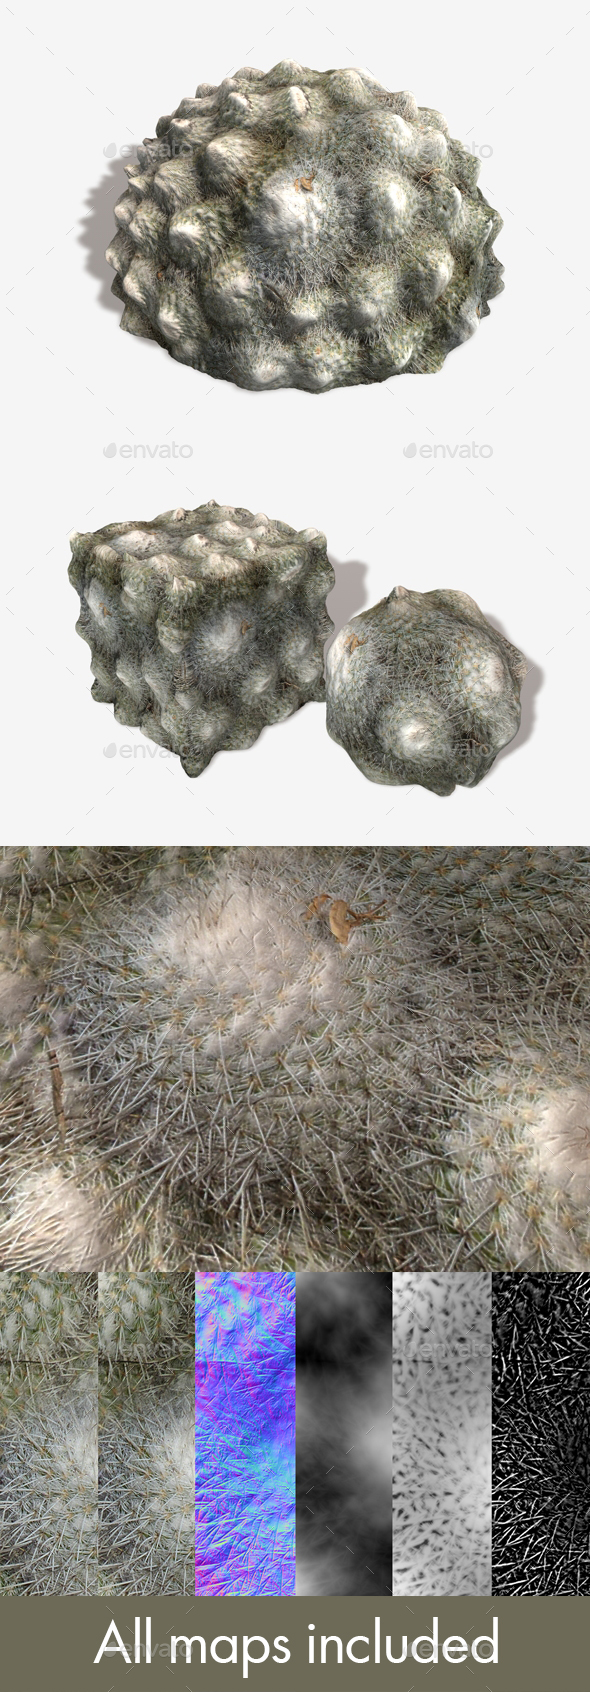 Ground Cactus Seamless Texture - 3DOcean Item for Sale